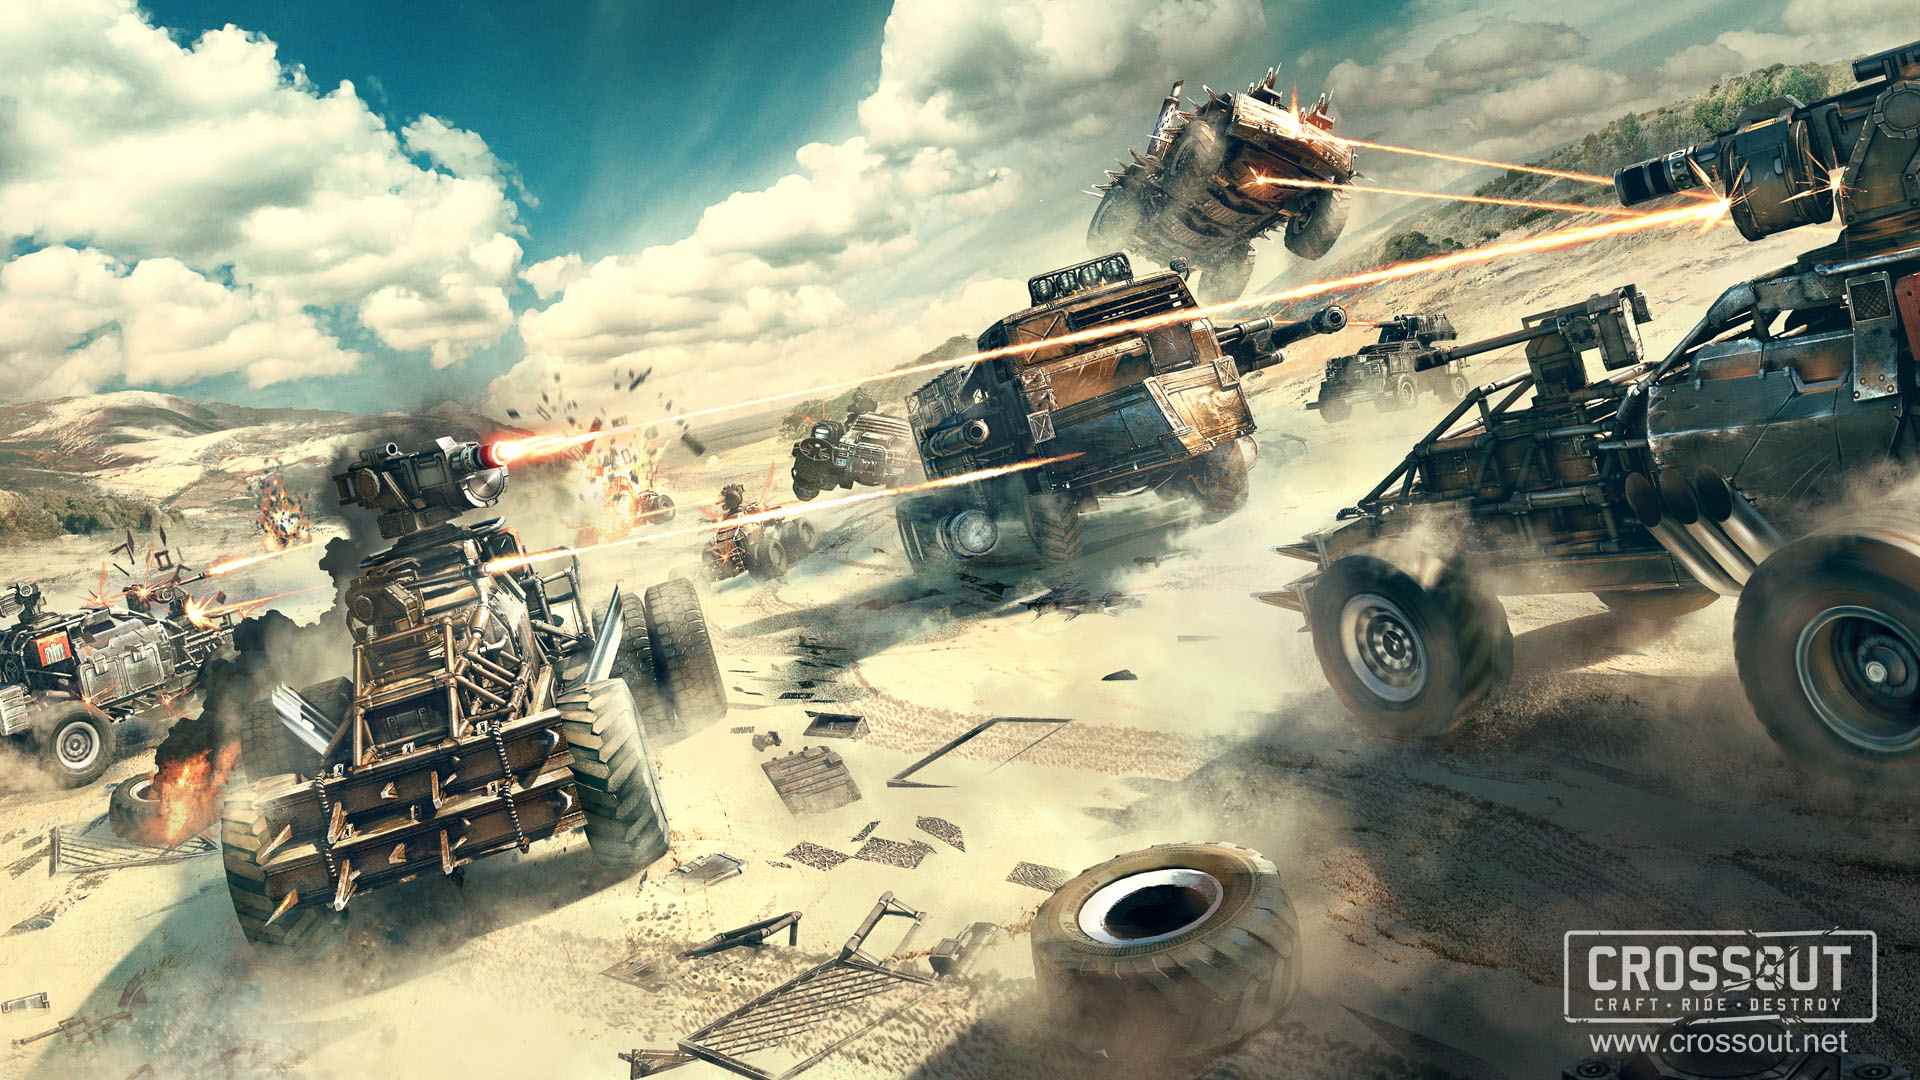 Crossout Wallpapers